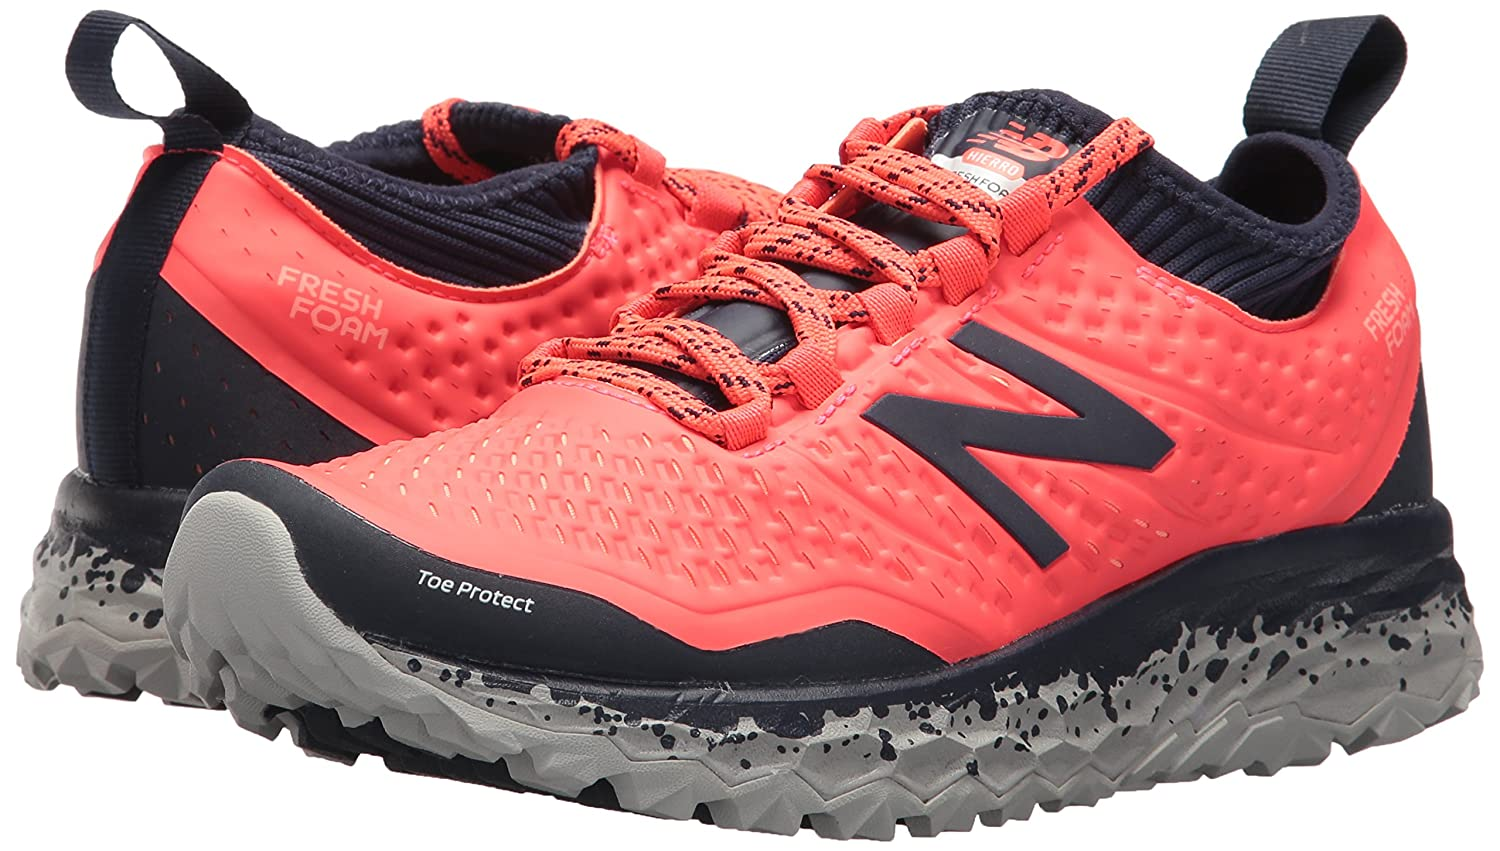 New Balance Women's Hierro V3 Trail Running Shoe Coral/Pigment B06XSD6DN5 8 D US|Vivid Coral/Pigment Shoe 11a49b